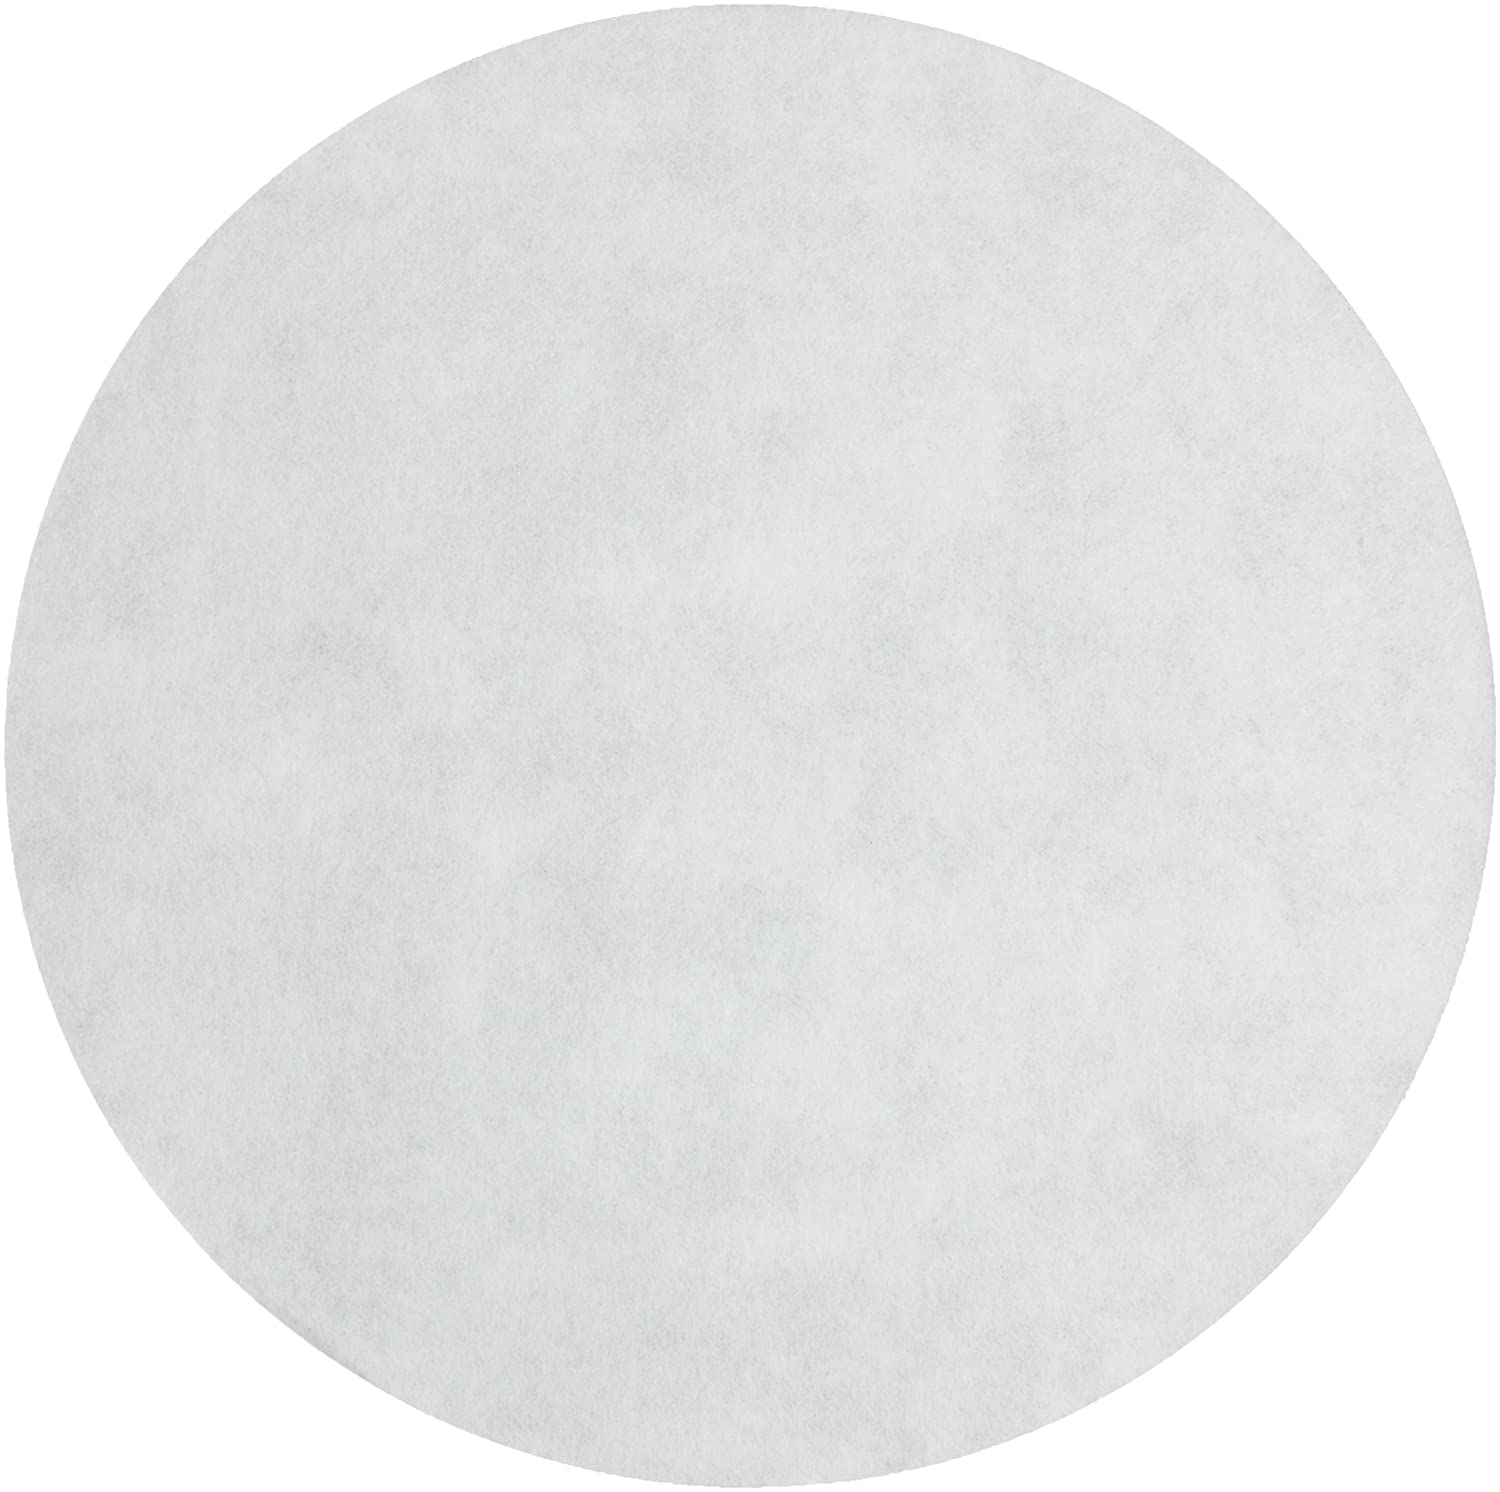 Whatman 10311612 Spring new work one after another Quantitative Filter Paper Micron Circles 4-7 Soldering